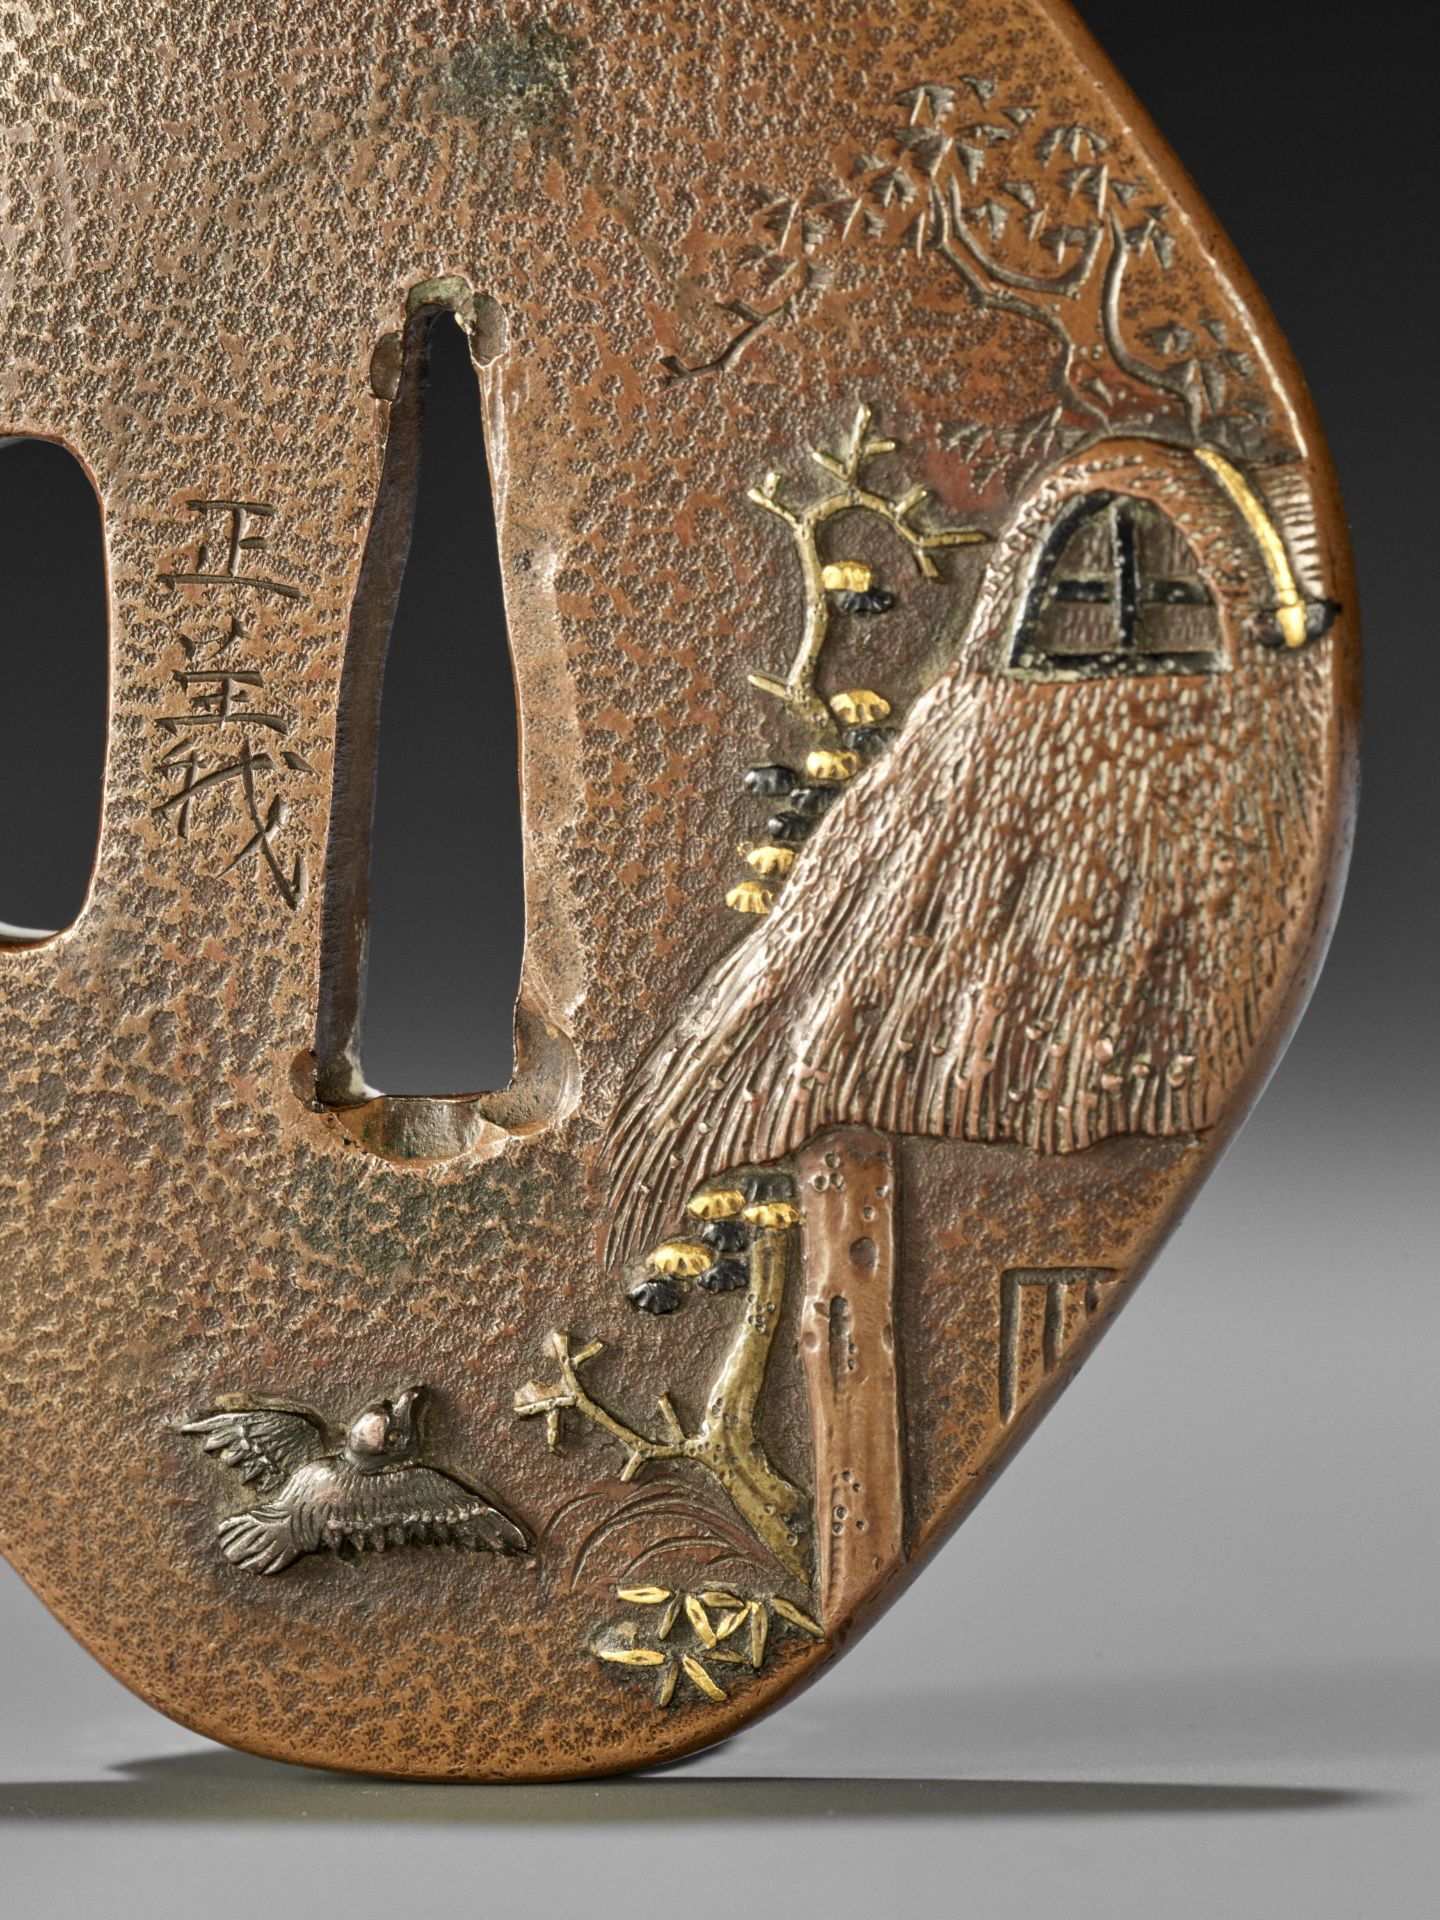 MASAYOSHI: A FINE COPPER TSUBA WITH SPARROWS AND THATCHED HUT - Image 3 of 5